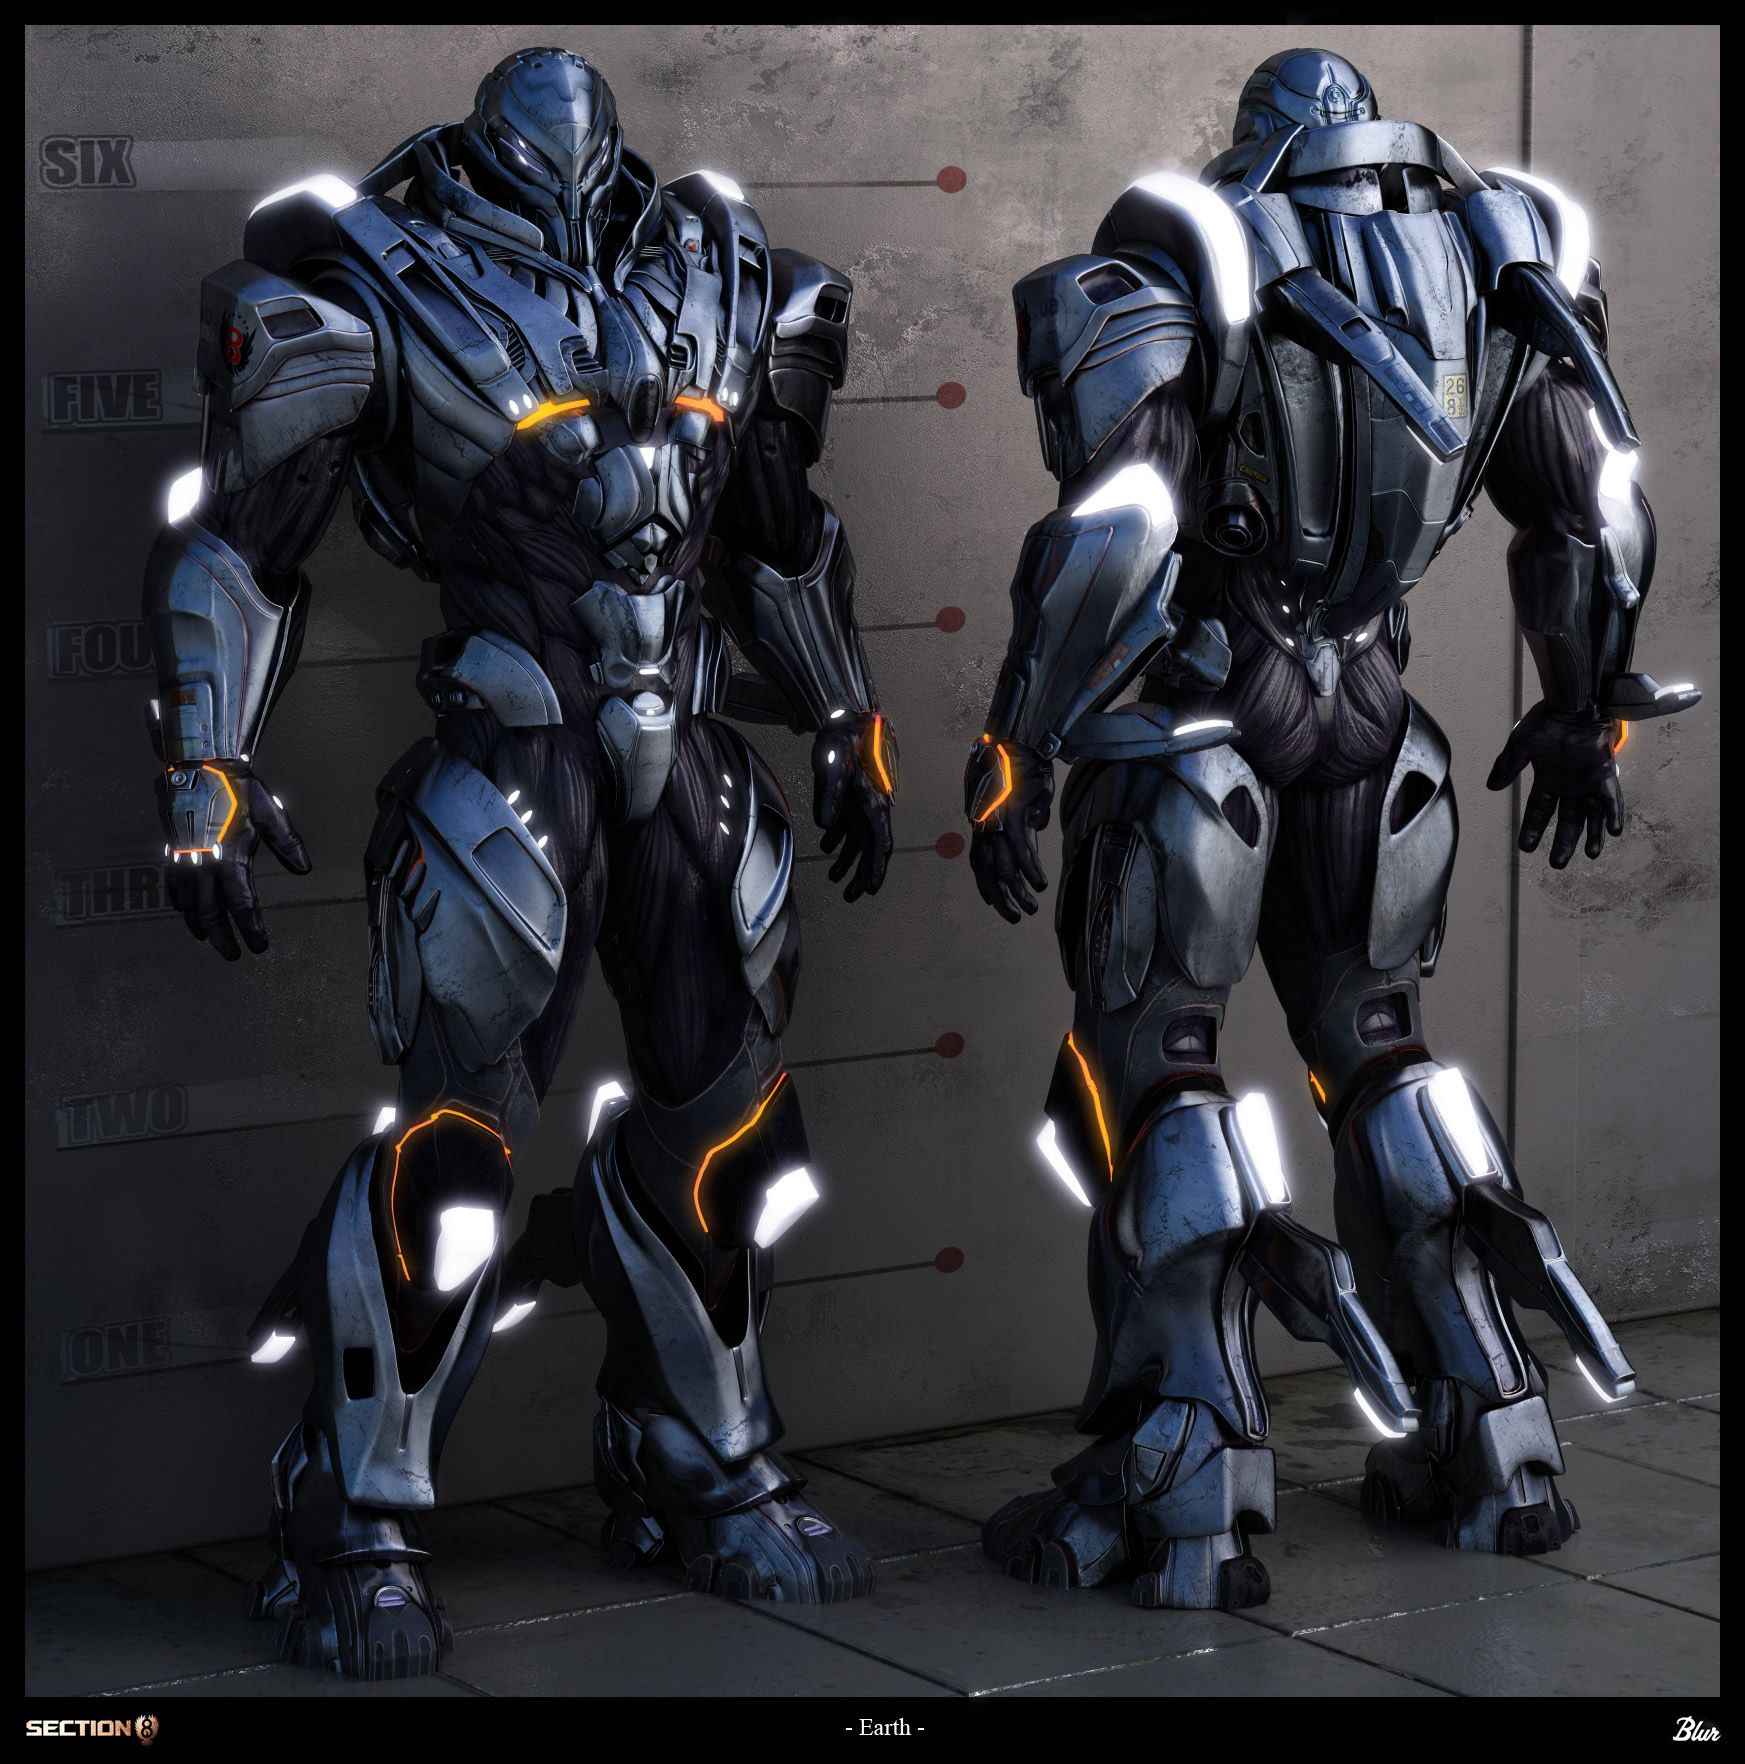 Sci Fi Armor Concept Art | The awesome power of battlesuit and armor concept art! / Iron man 2